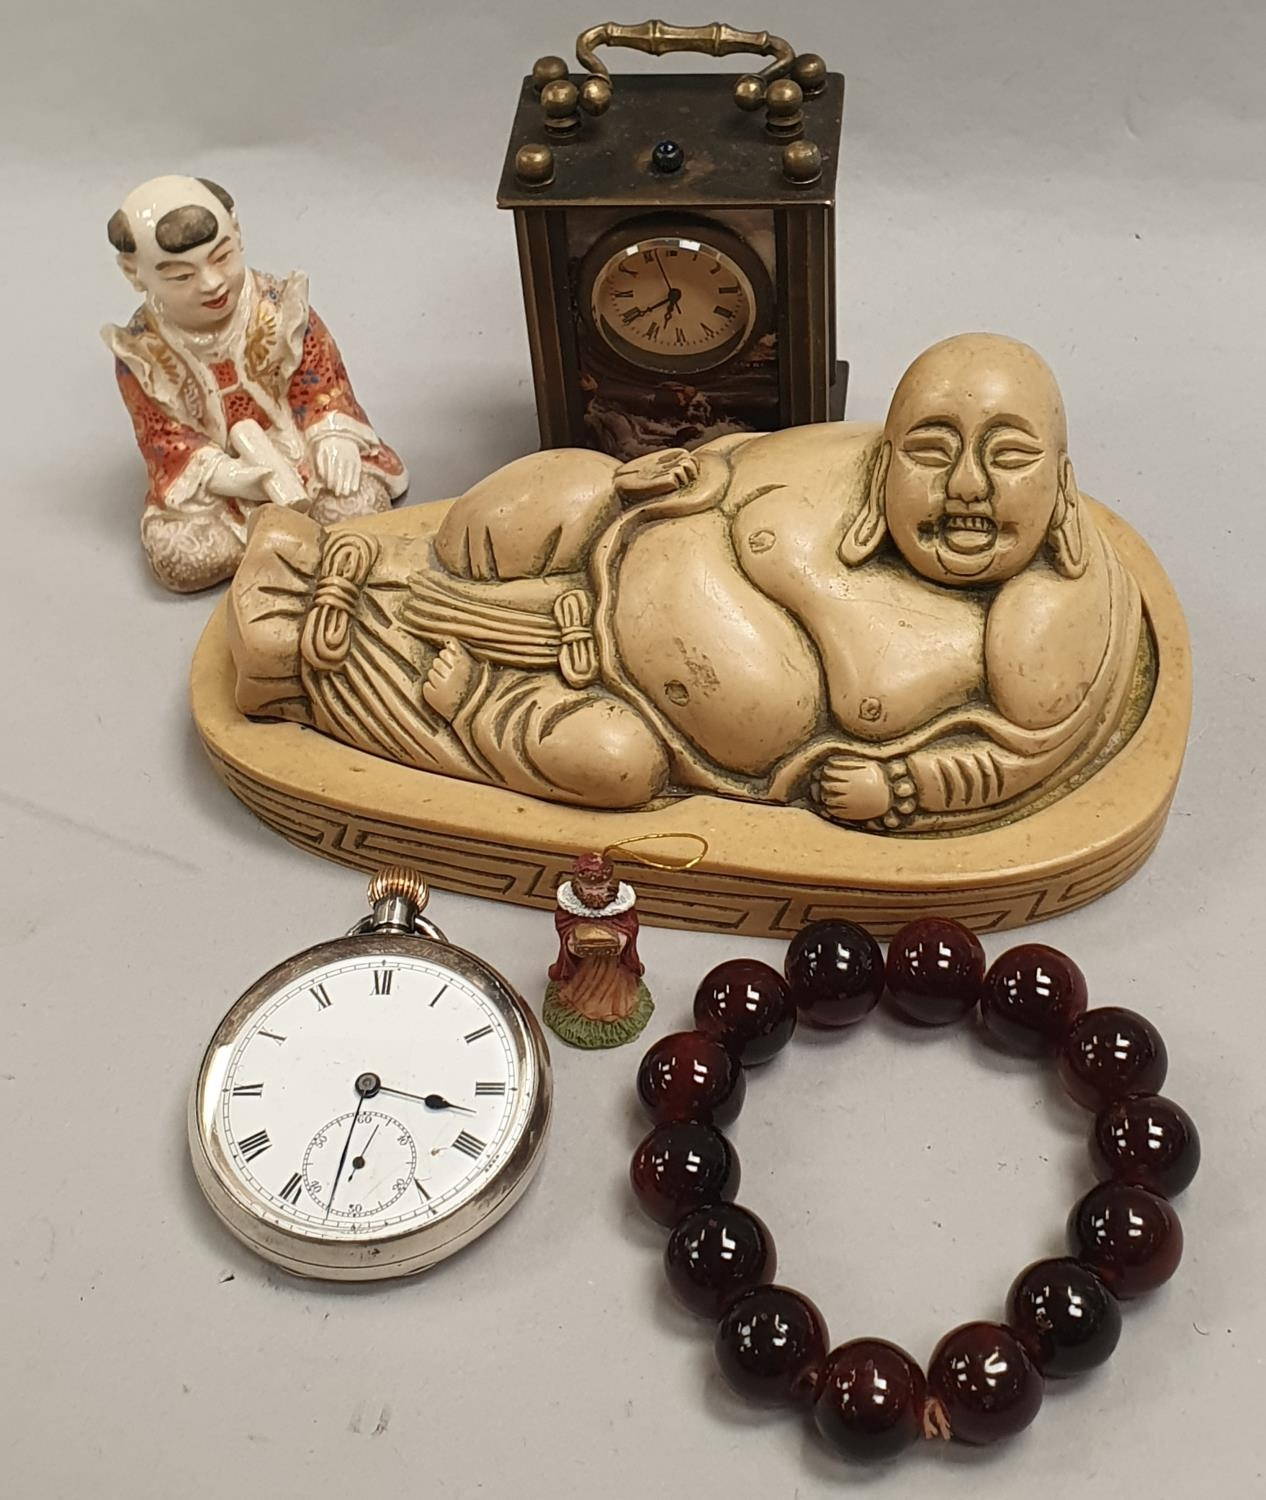 Miscellaneous curios to include pocket watch.